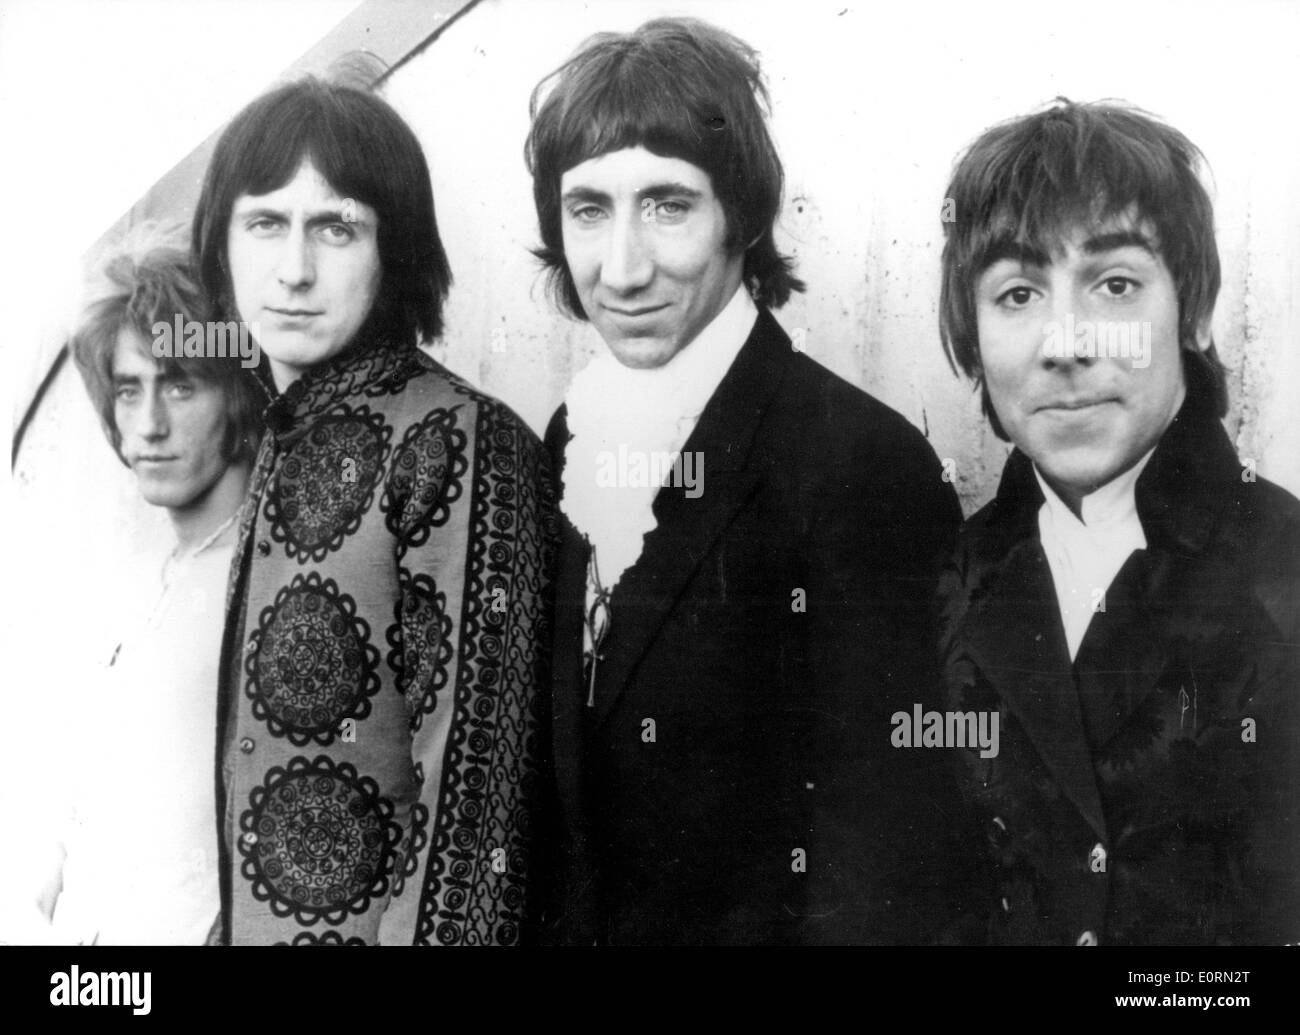 Portrait of the hard rock band The Who - Stock Image